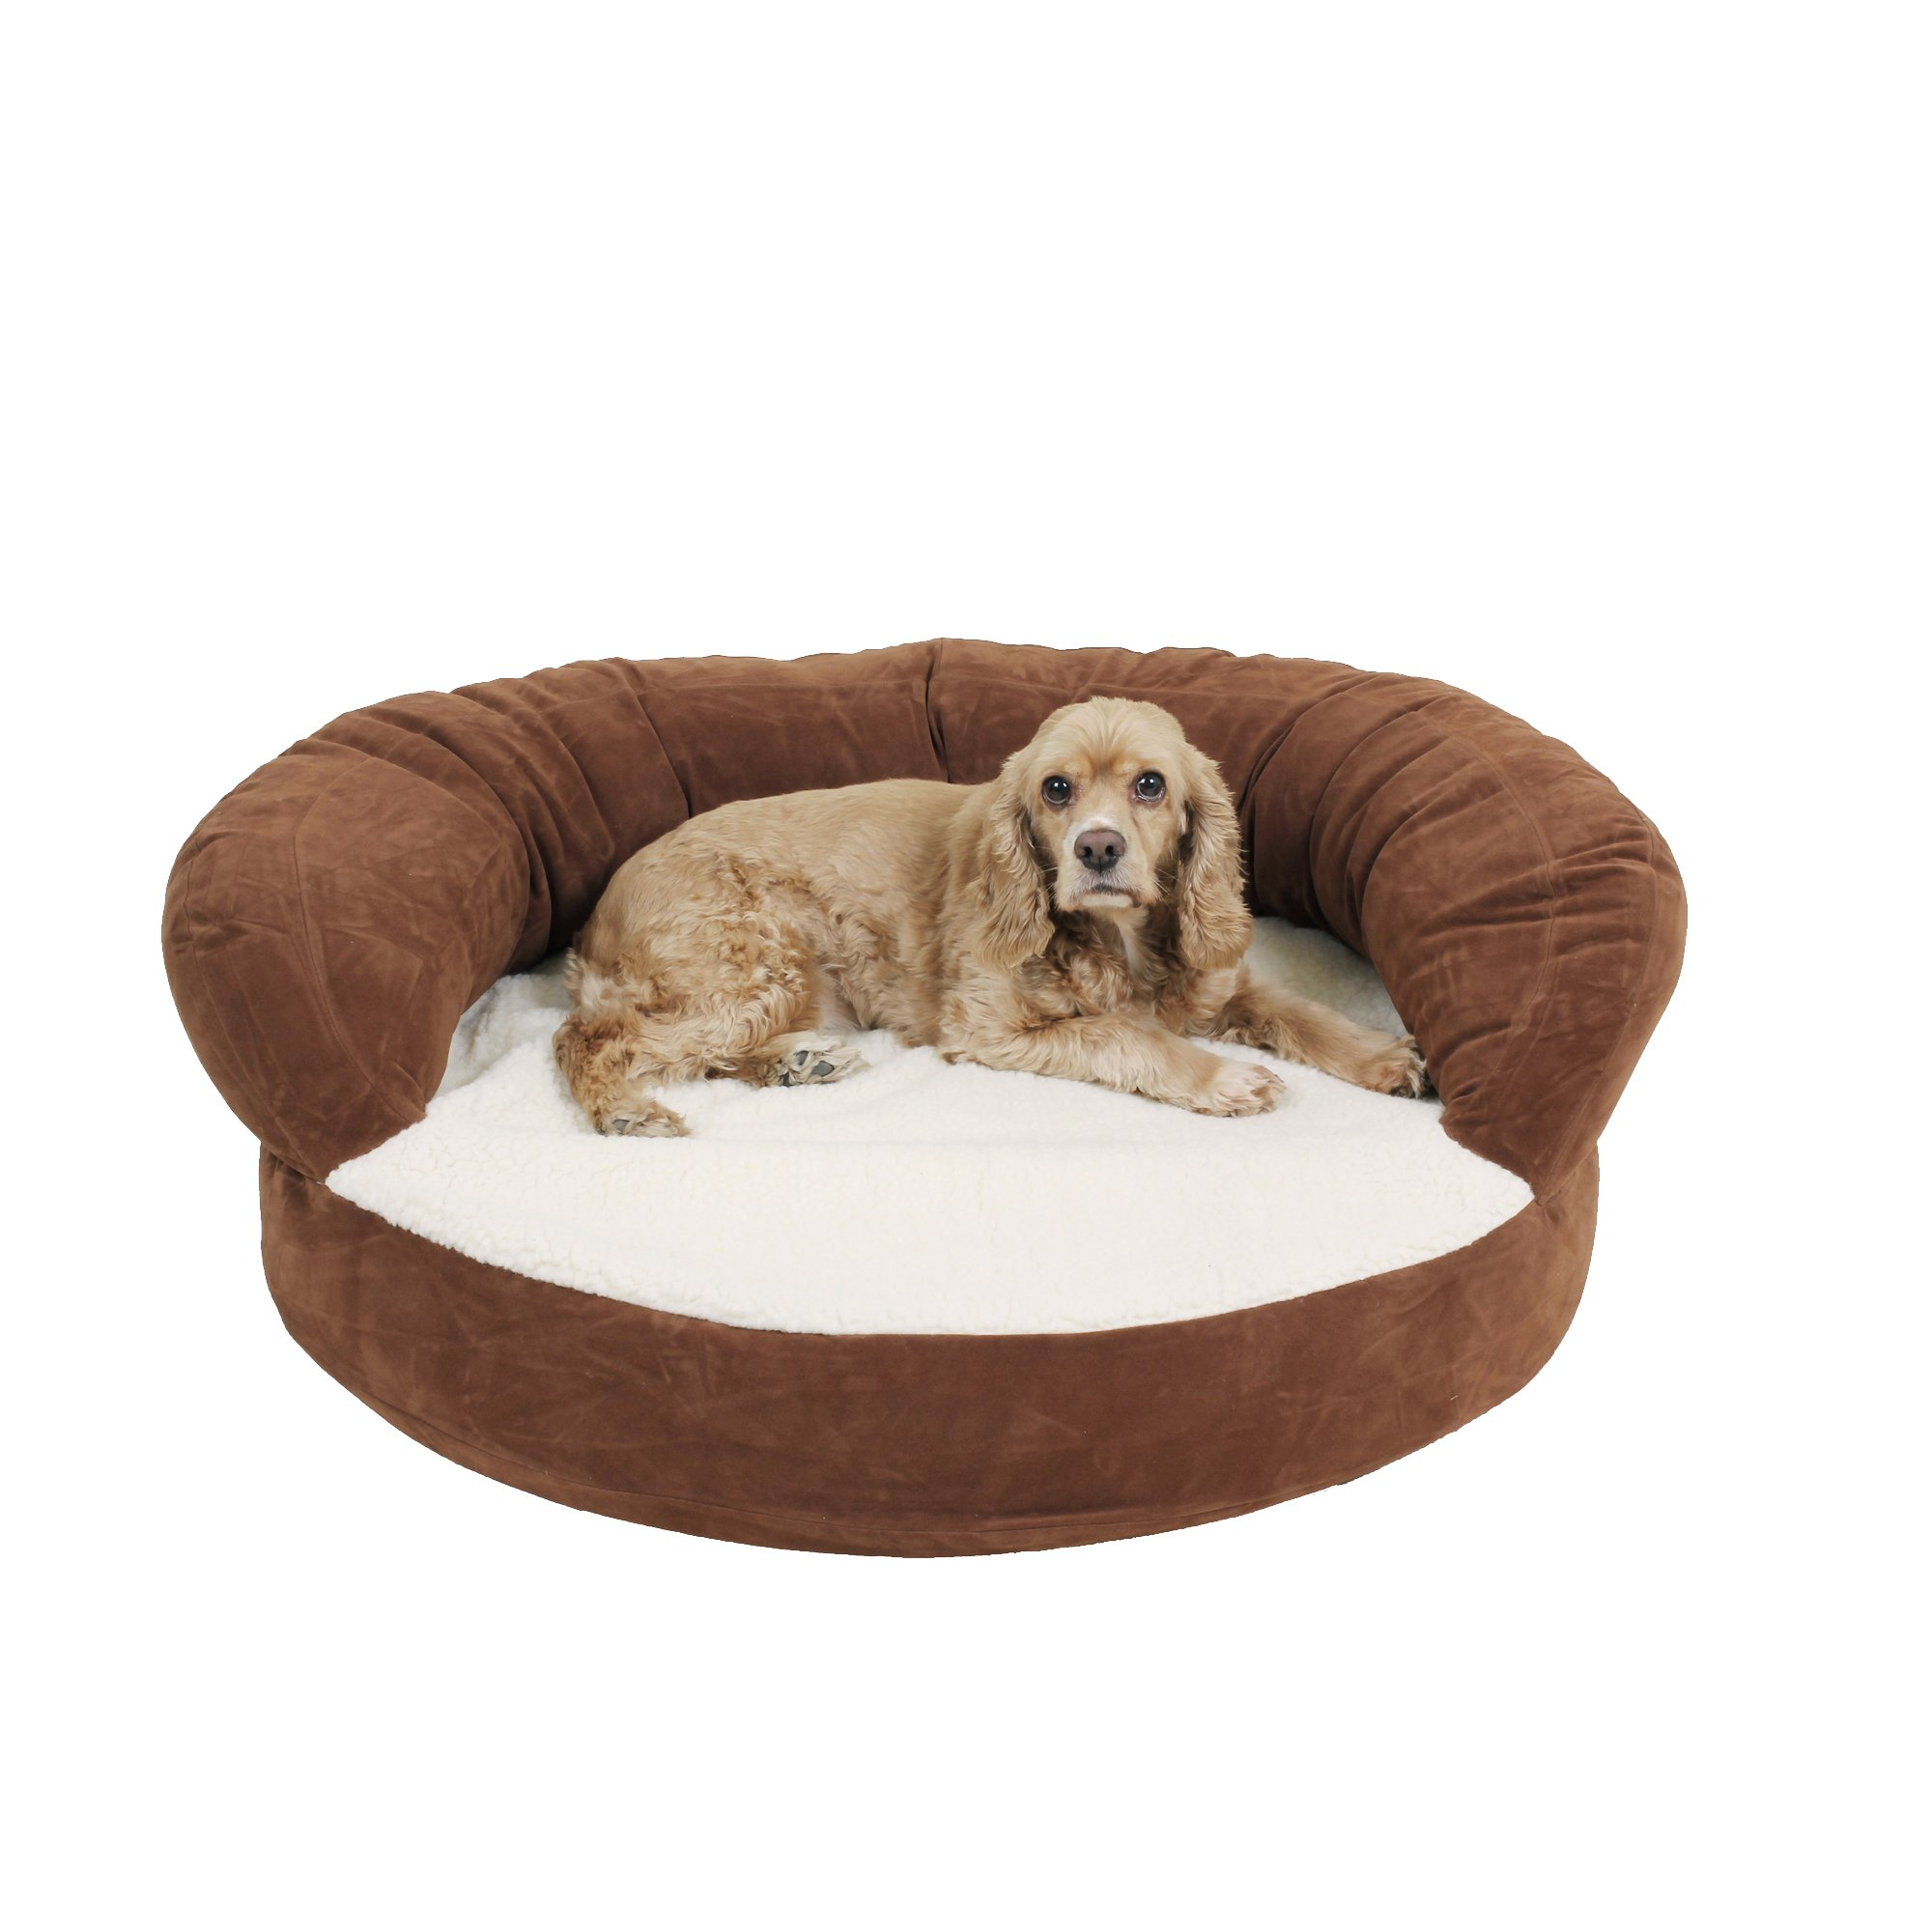 shop on sale memory harmony category en and foam small dog grey petco center bed bedding best petcostore beds large lounger